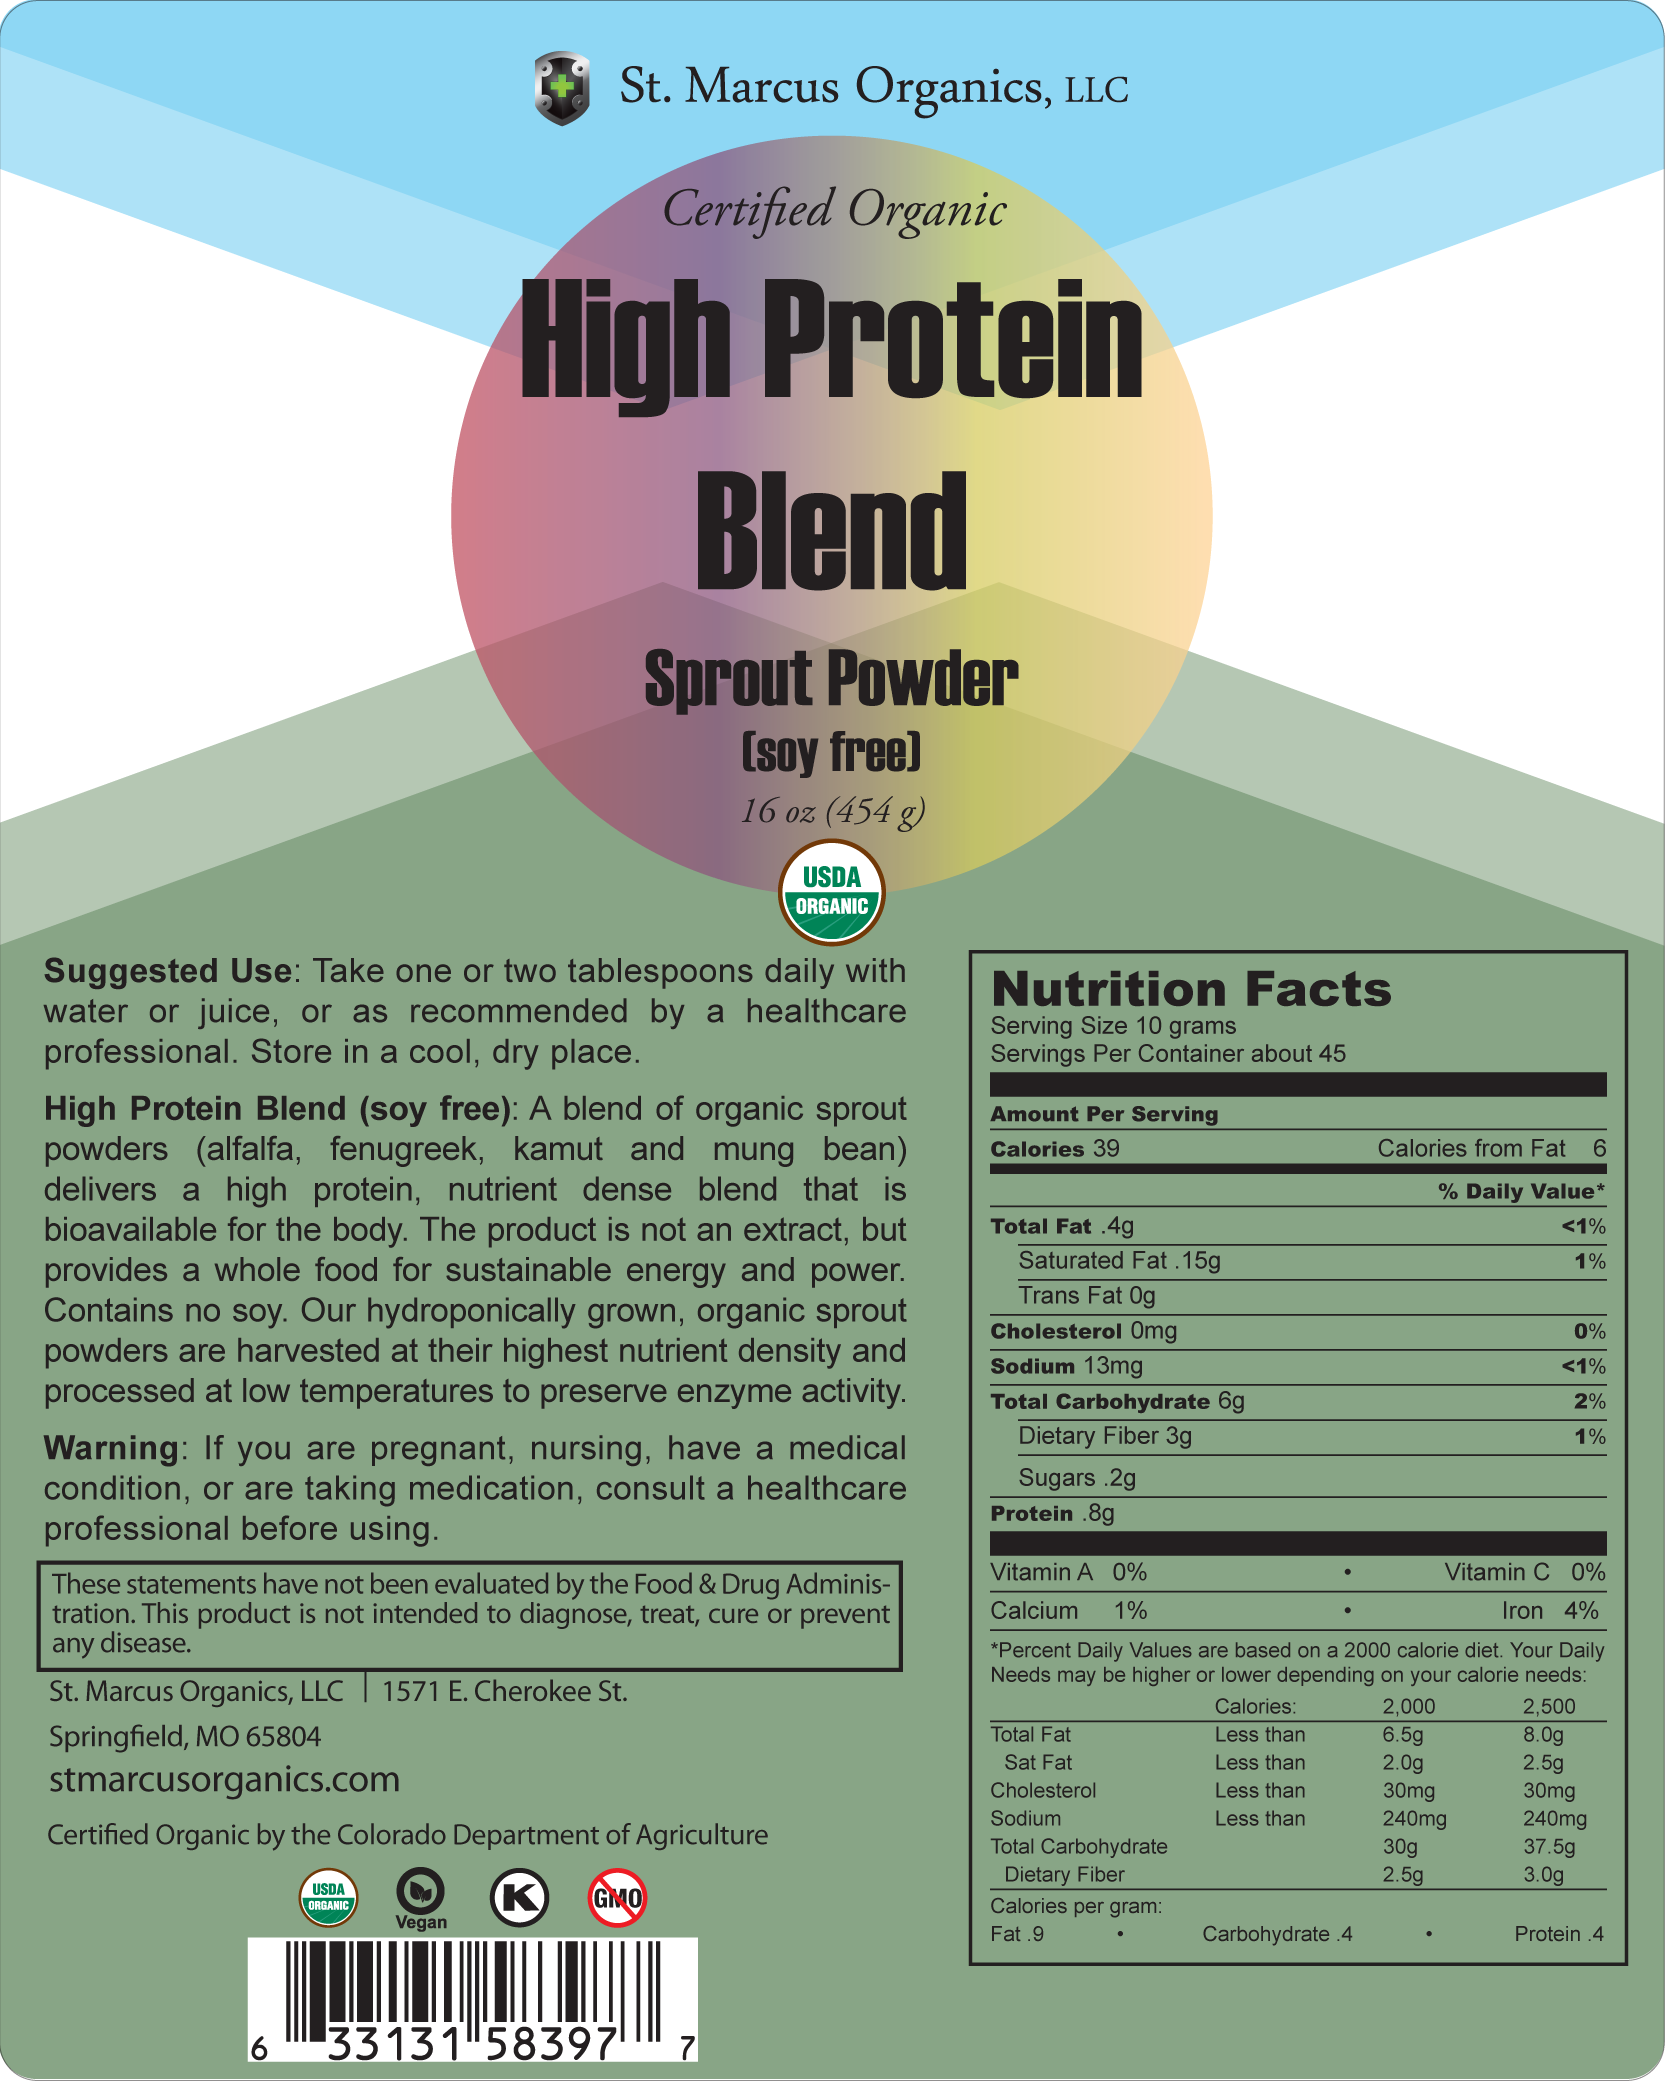 High-Protein-Soy-Free-Sprout-Powder-Bag-St-Marcus-Organics